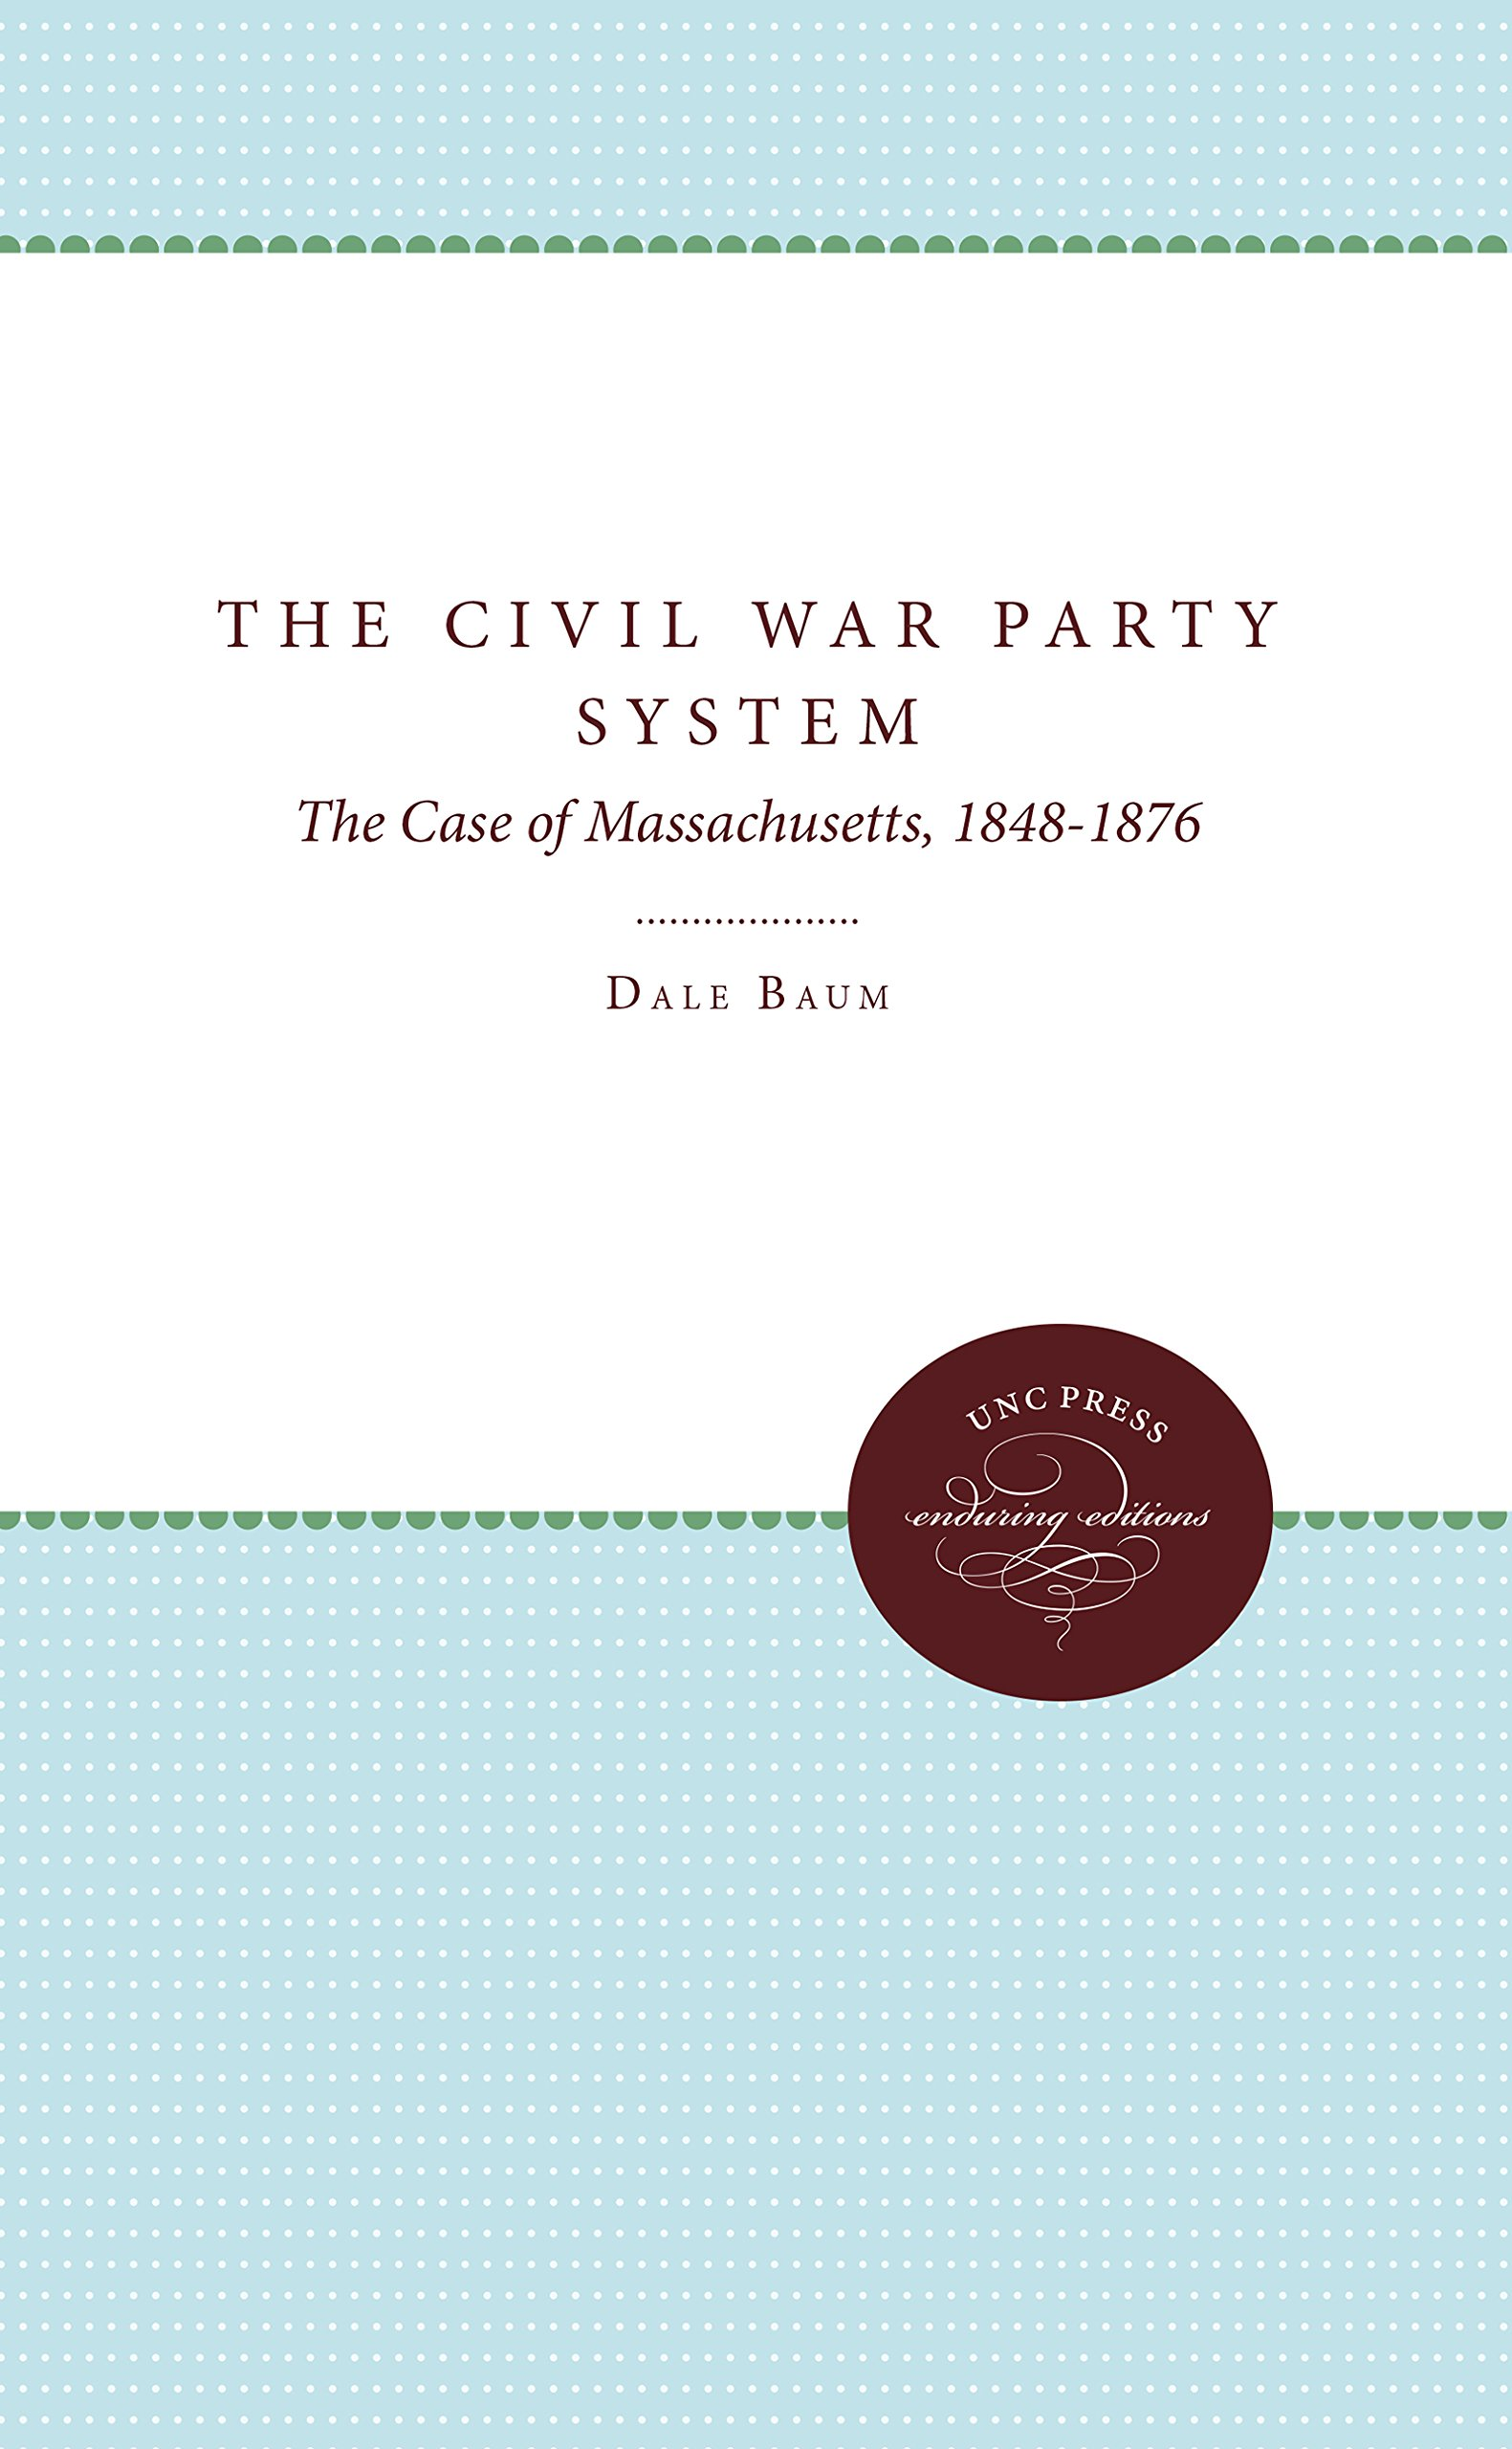 Download The Civil War Party System: The Case of Massachusetts, 1848-1876 PDF